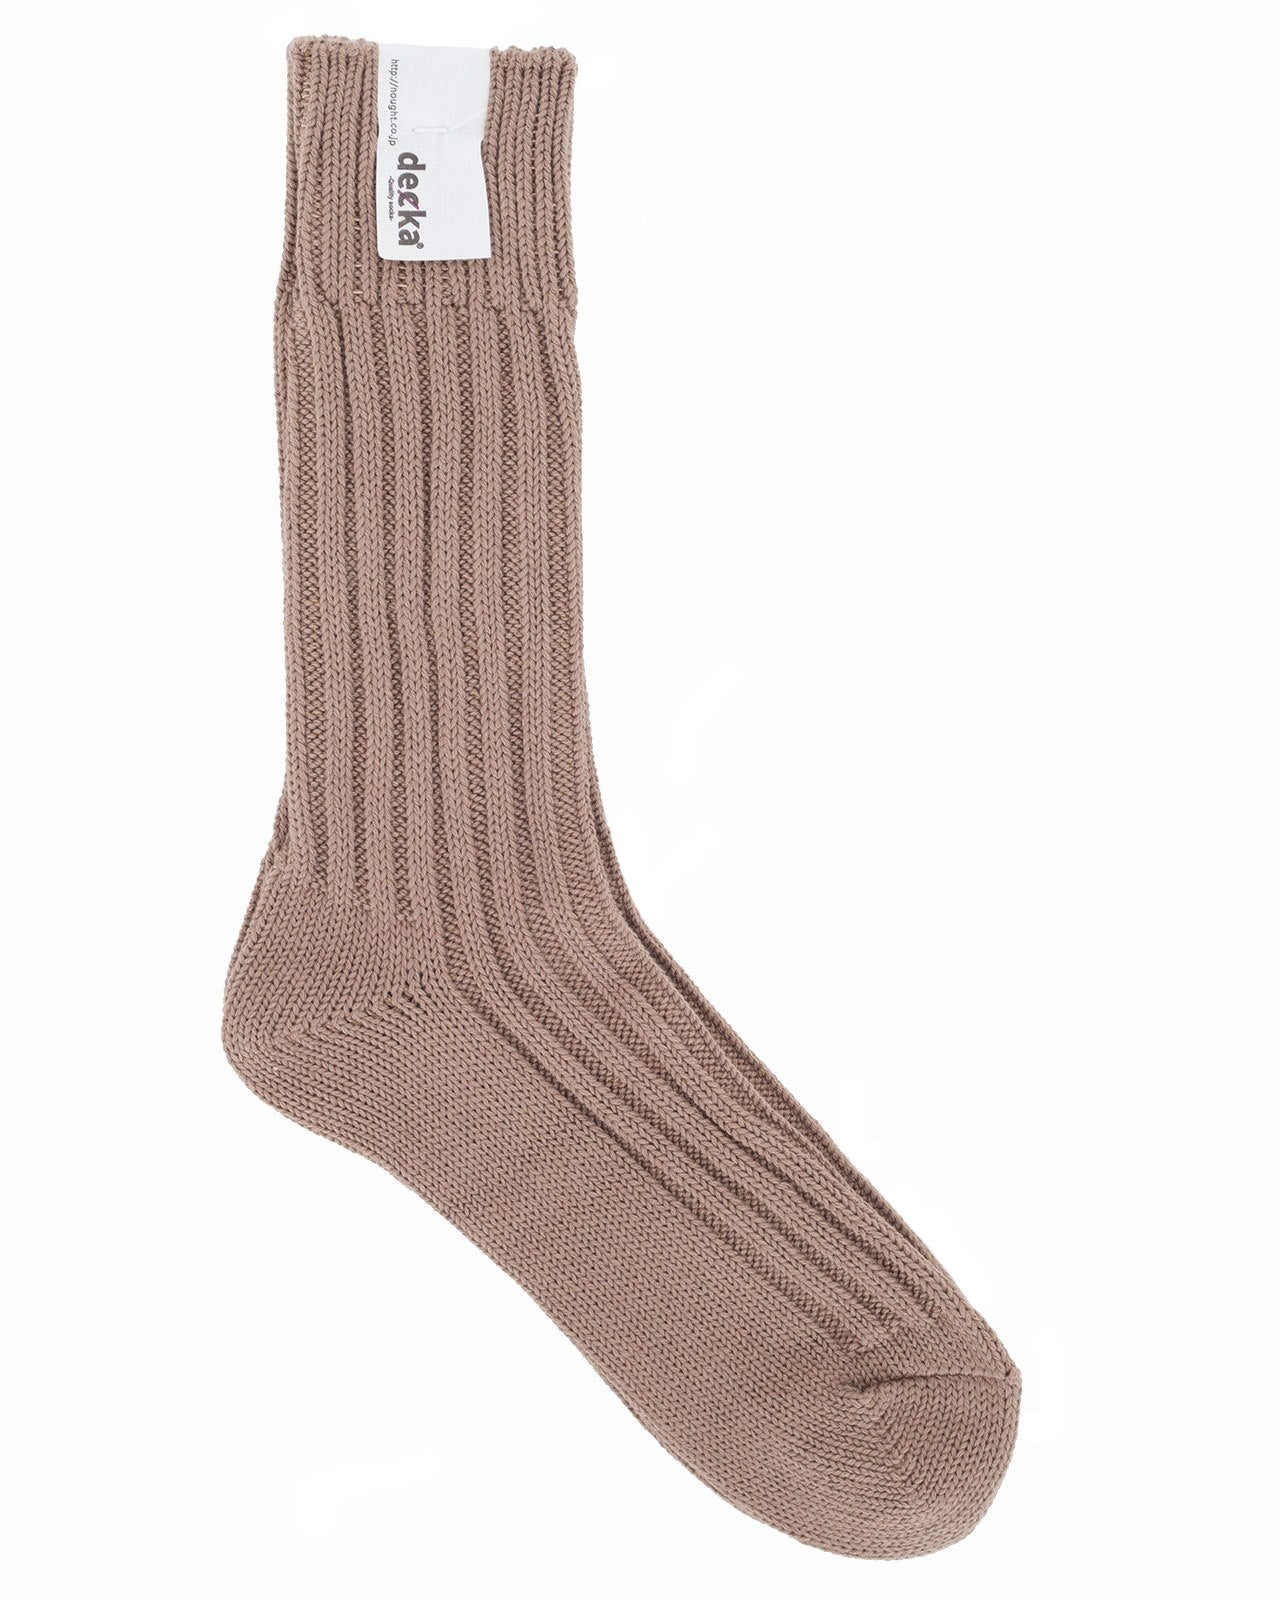 Decka Cased Heavy Weight Plain Socks, Beige